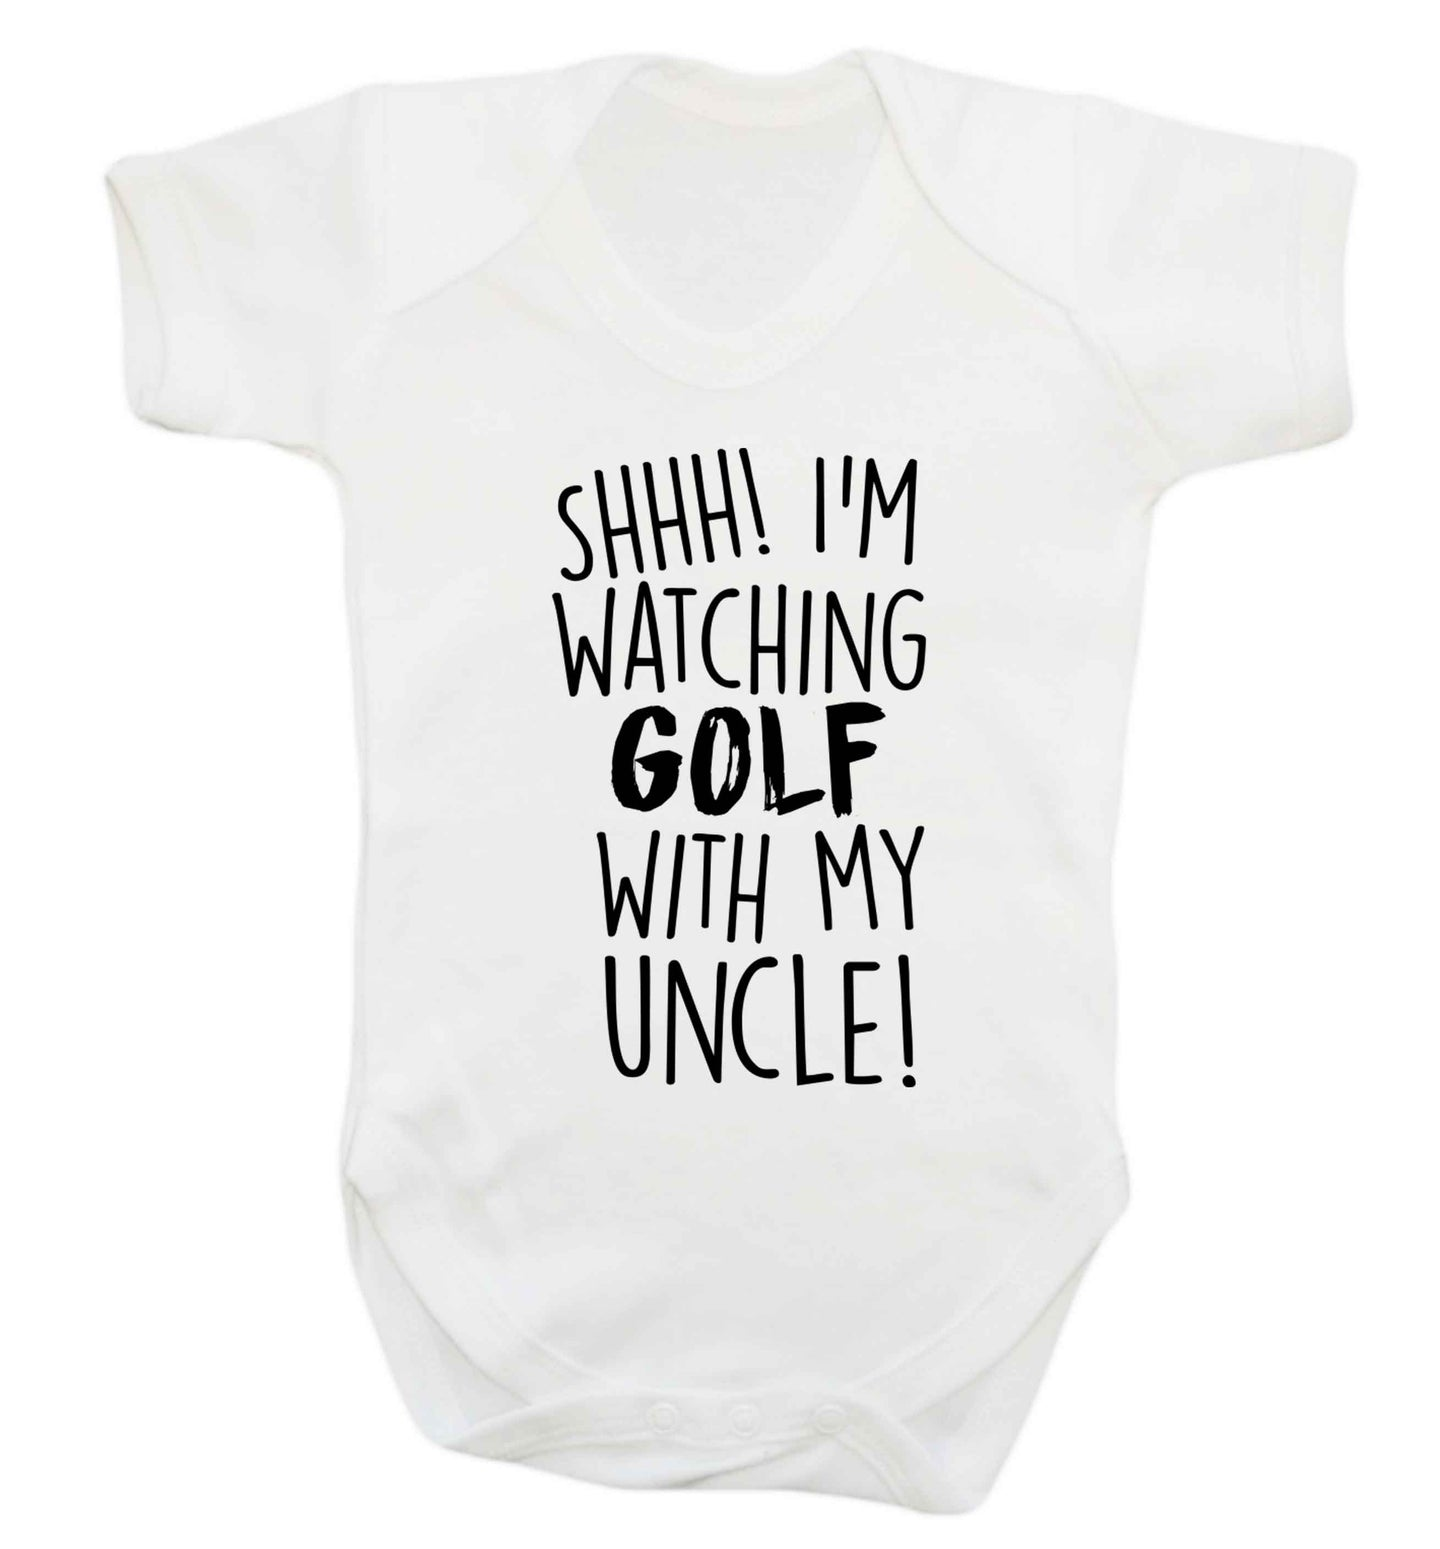 Shh I'm watching golf with my uncle Baby Vest white 18-24 months